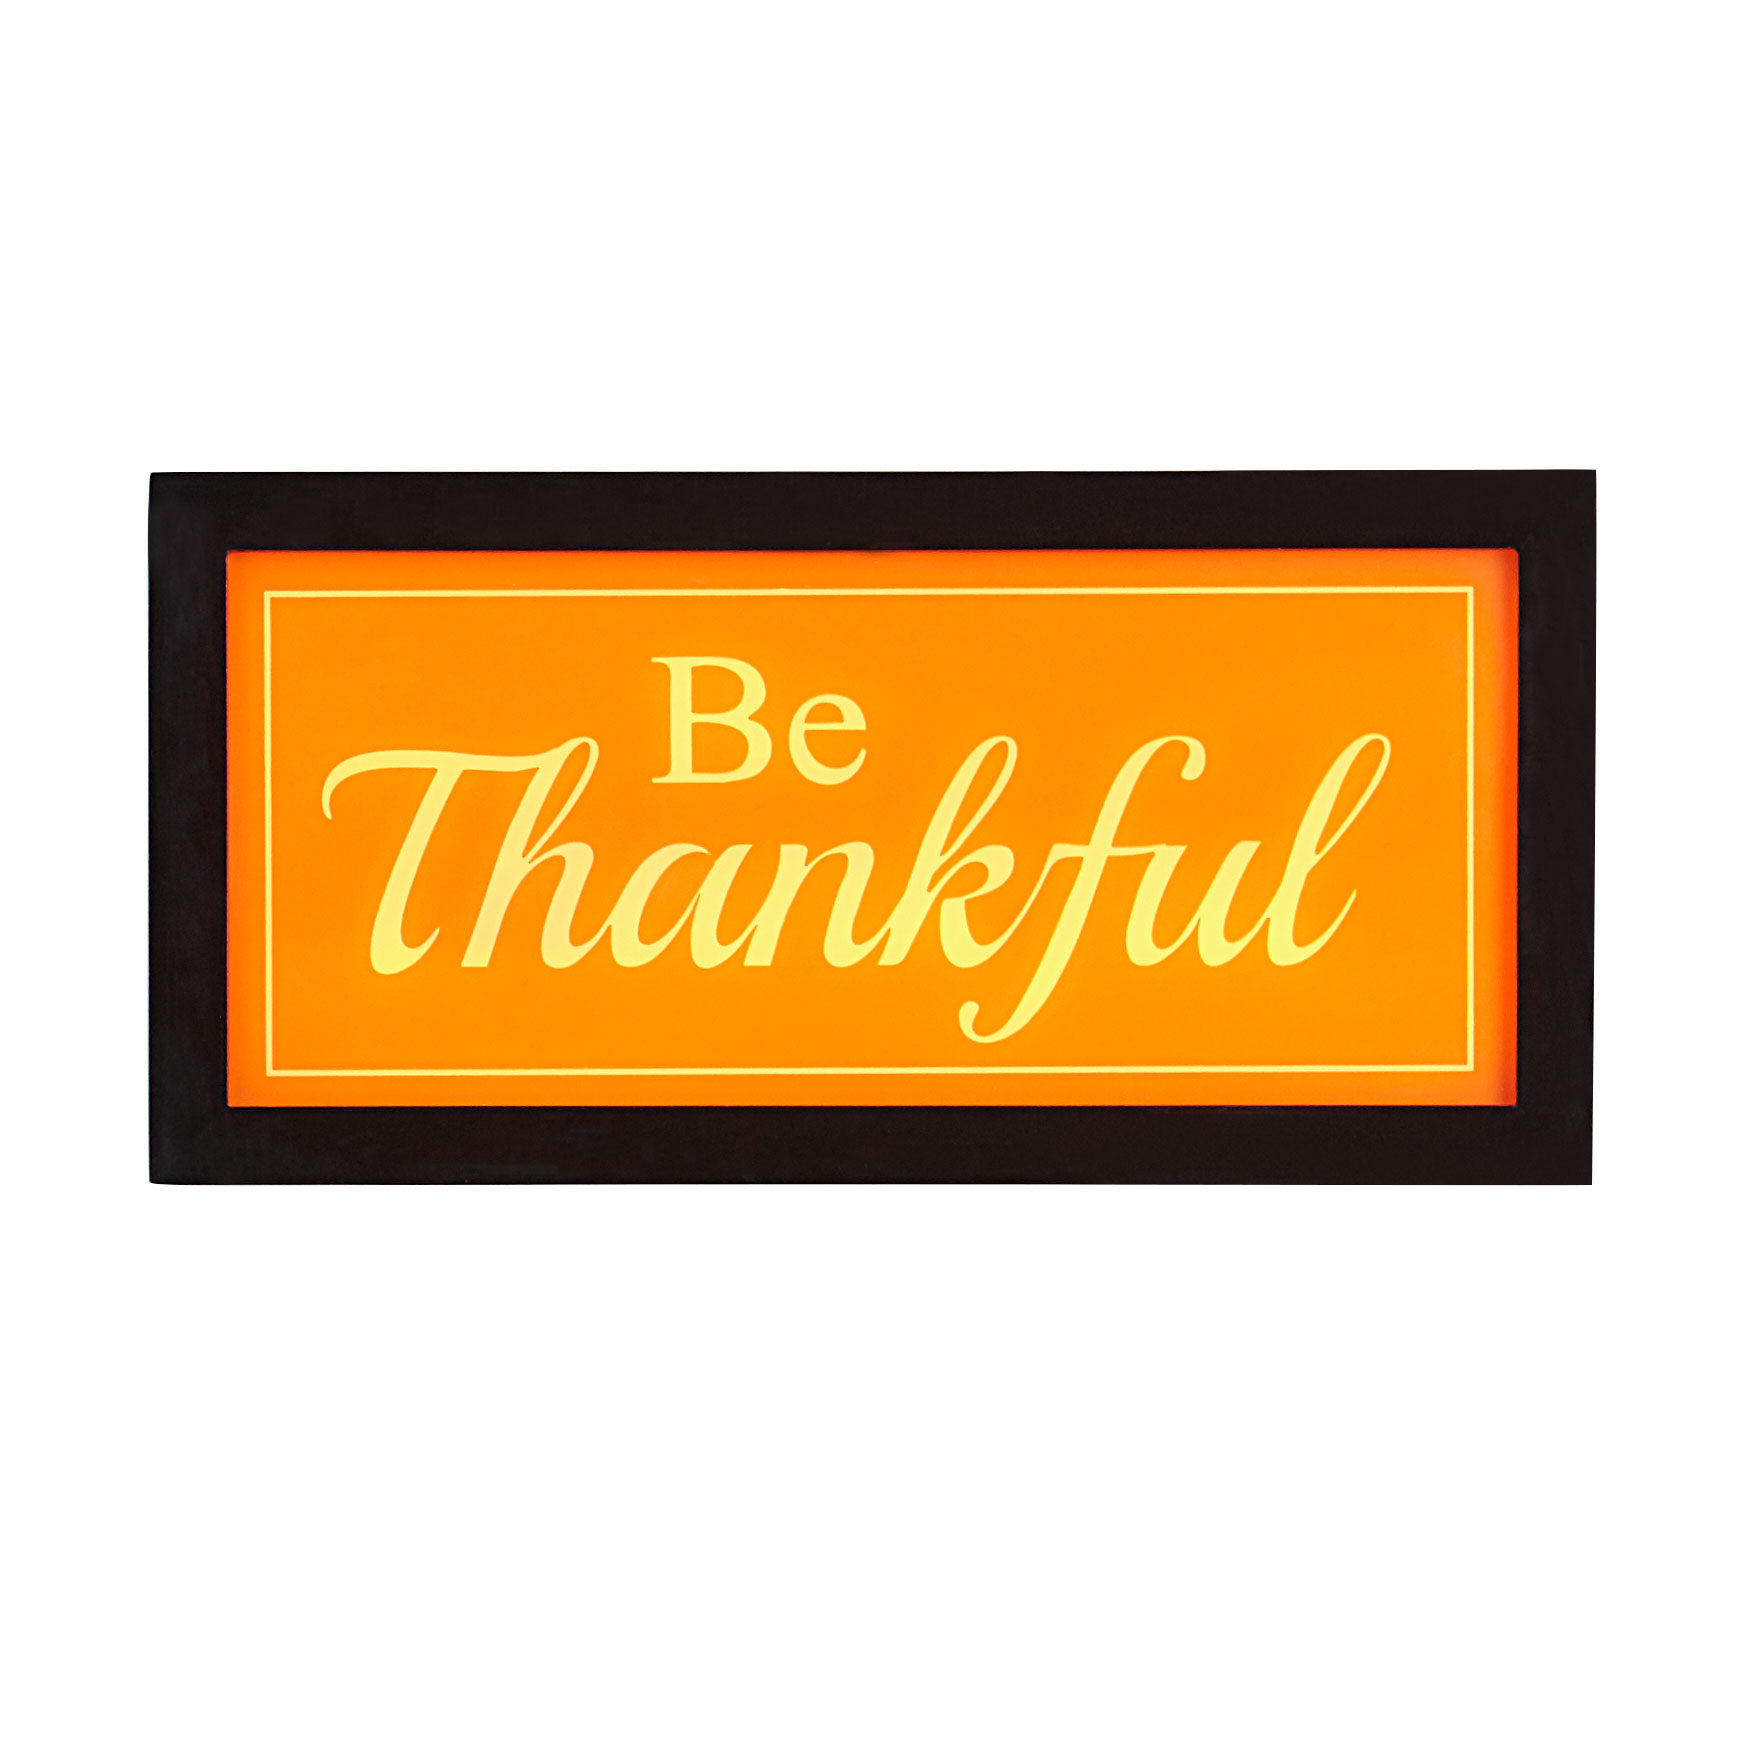 Be Thankful Light Box, ORANGE